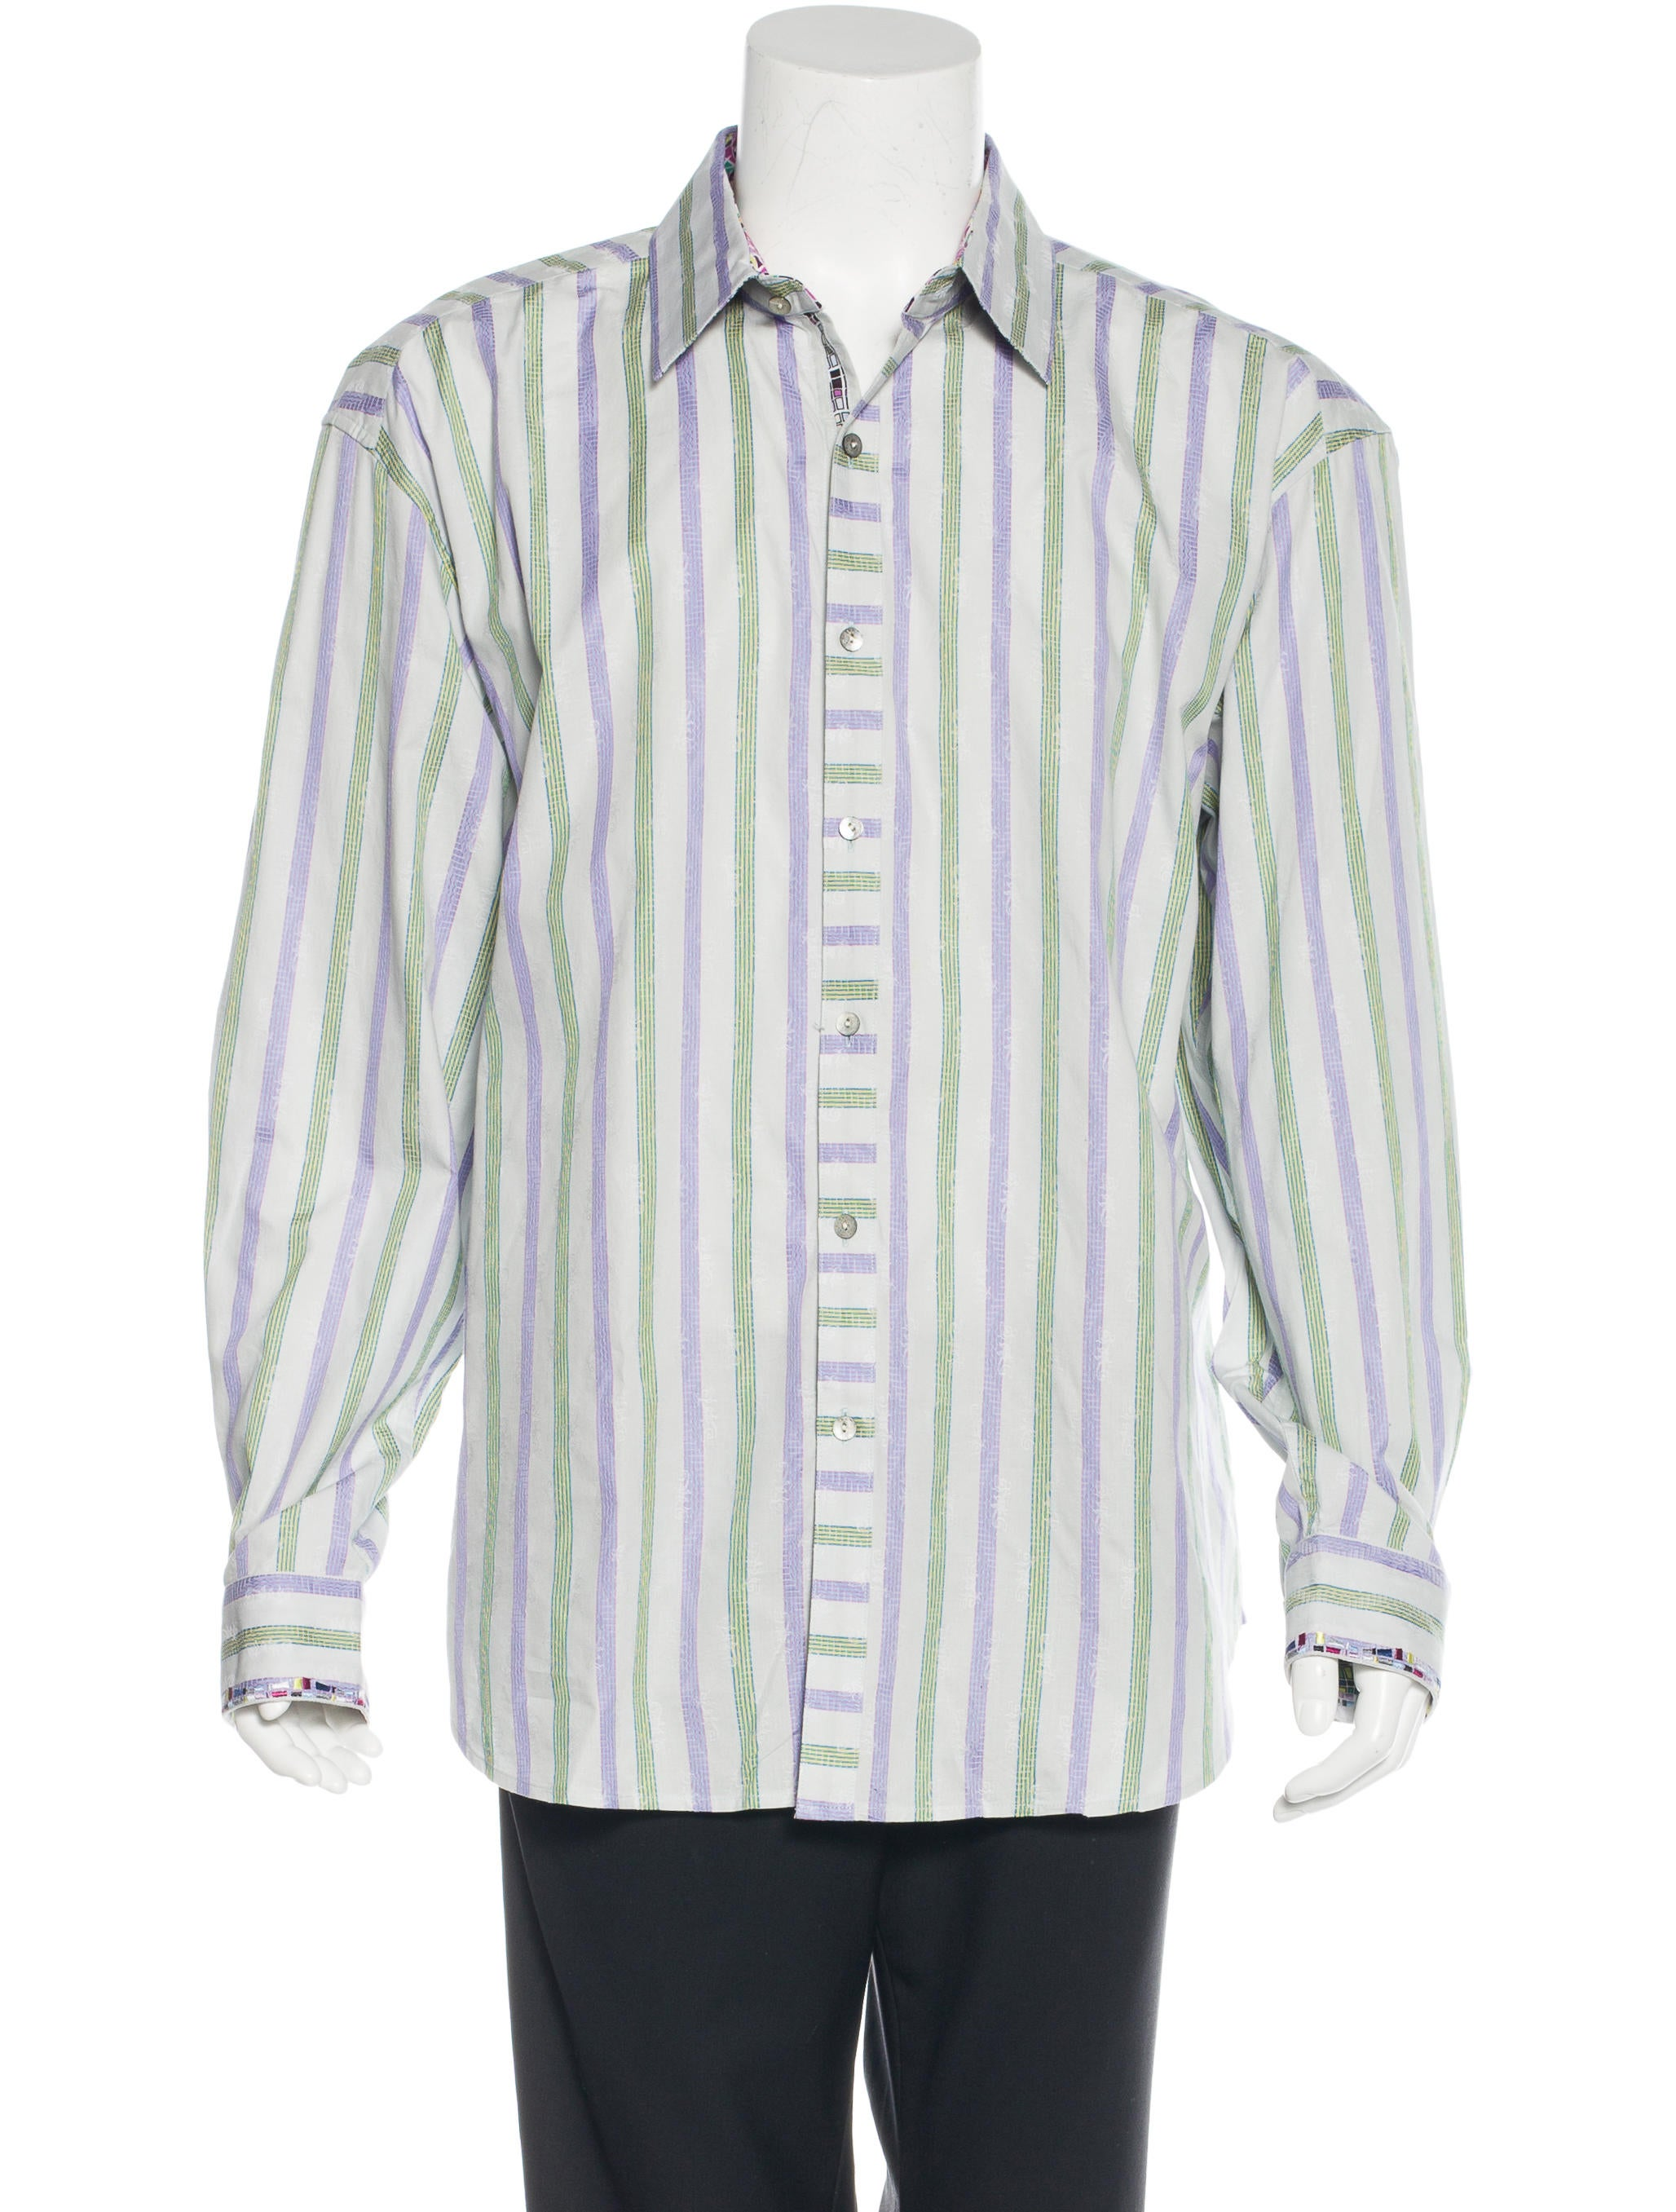 Robert graham striped woven shirt clothing wrobg20603 for Where are robert graham shirts made